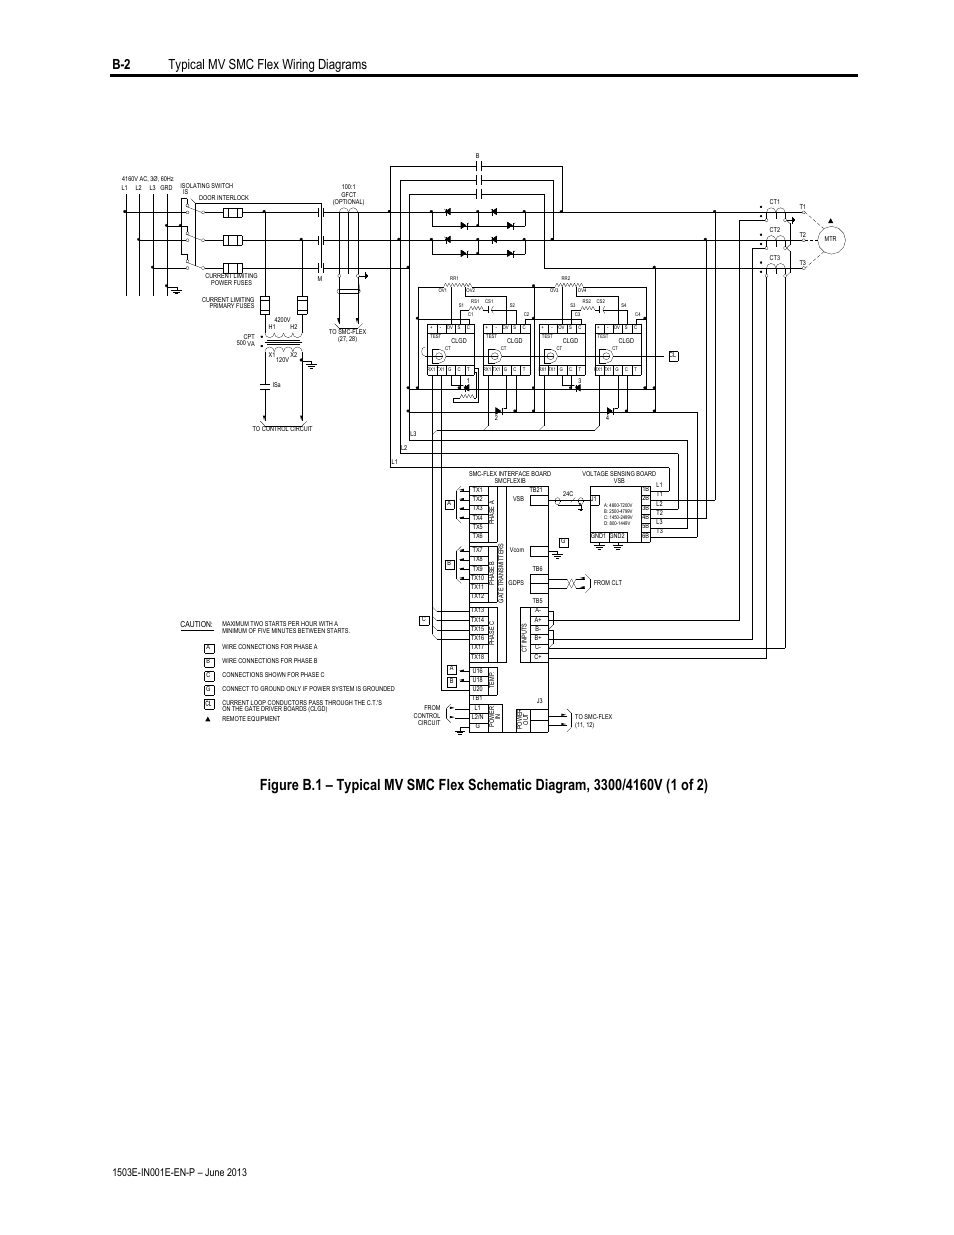 hight resolution of b 2 typical mv smc flex wiring diagrams rockwell automation mv smc chevy truck flex b